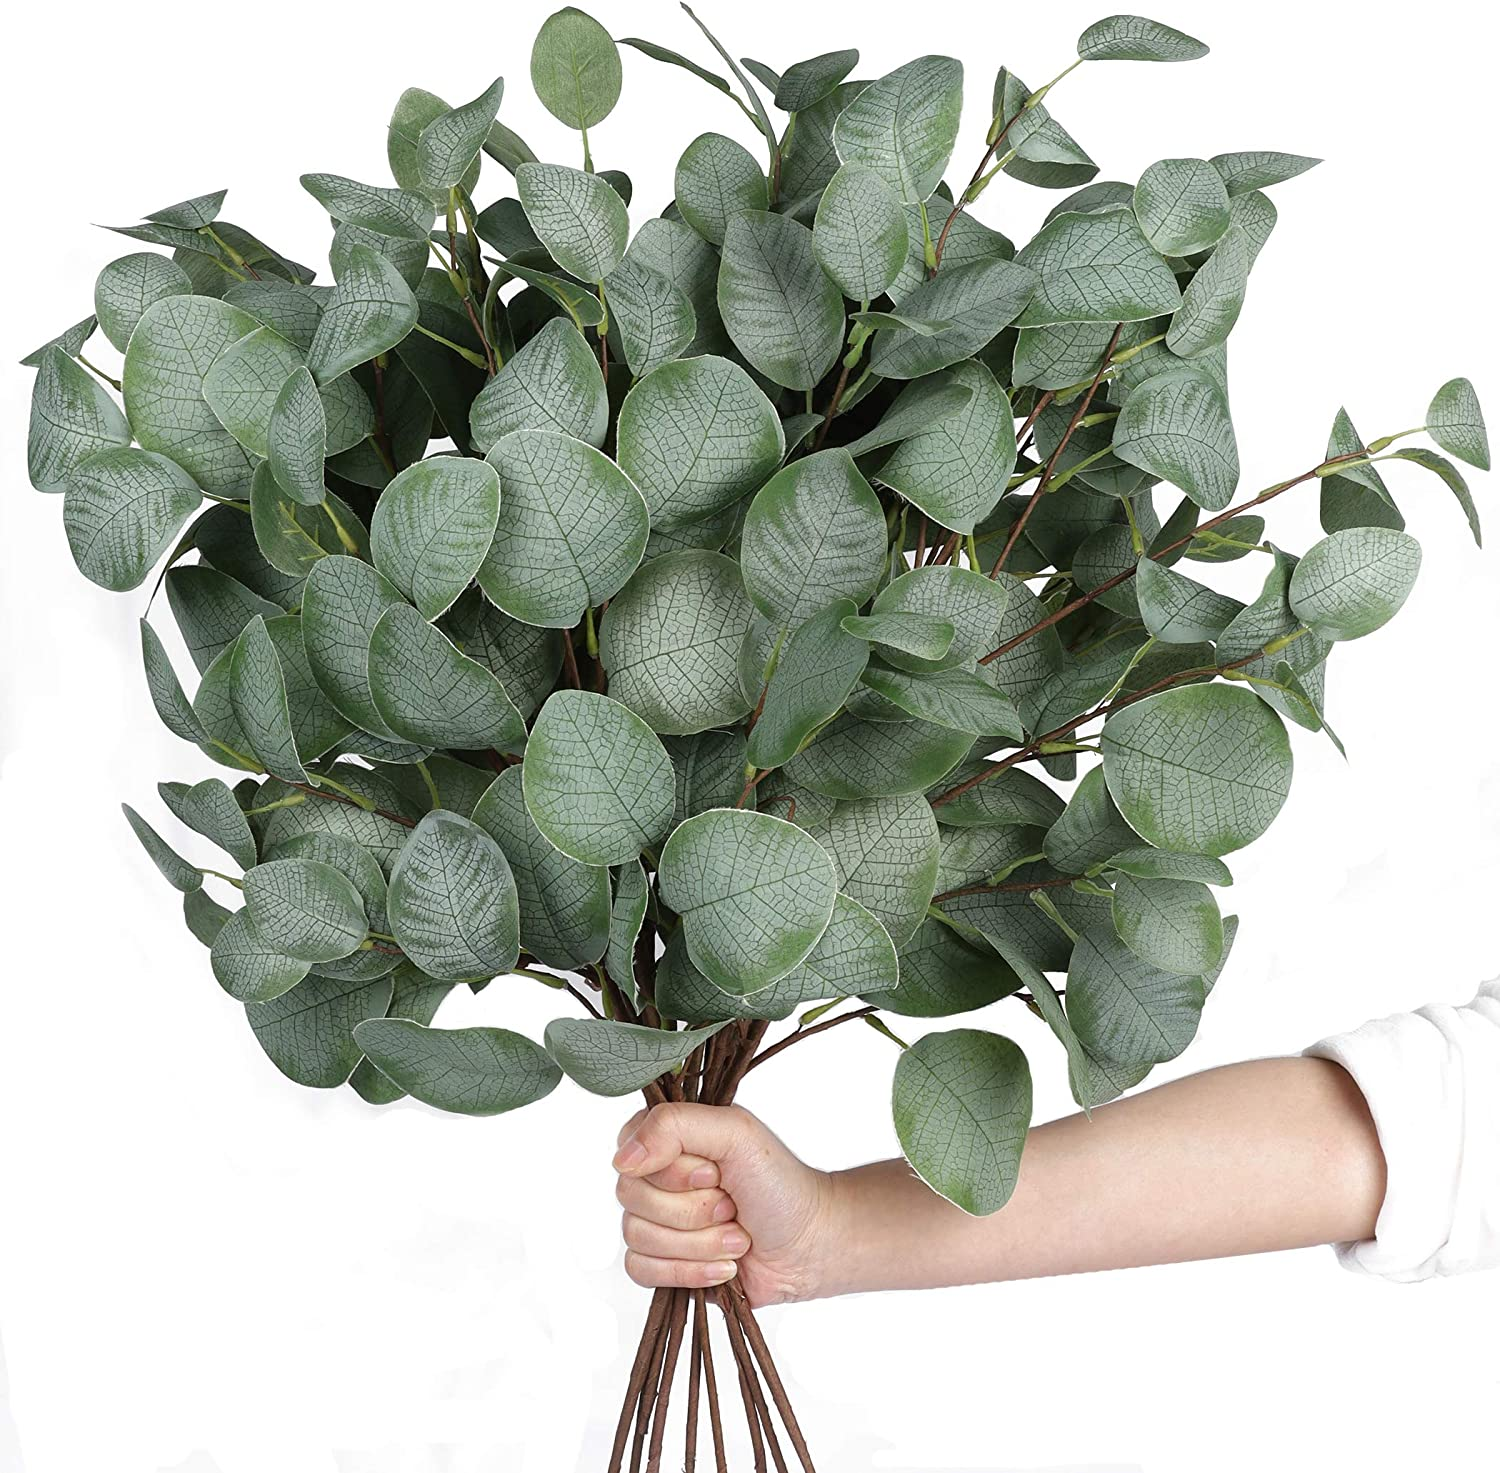 Miracliy 6pcs Artificial Eucalyptus Leaves Stems Faux Large Eucalyptus Greenery Stems for Vase Home Wedding Decor